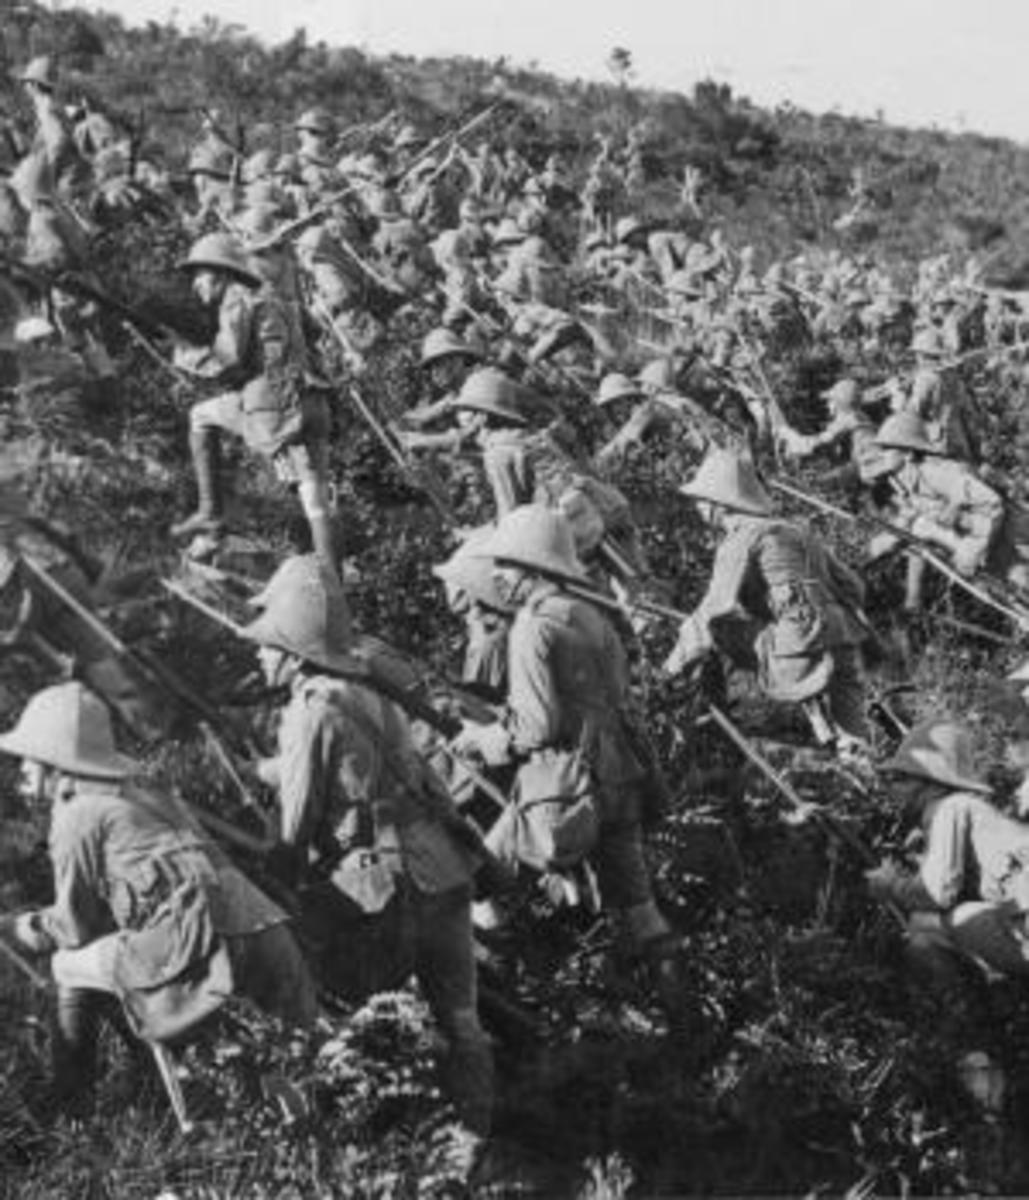 British troops advancing at Gallipoli, August 1915. (Credit: Hulton Archive/Getty Images)